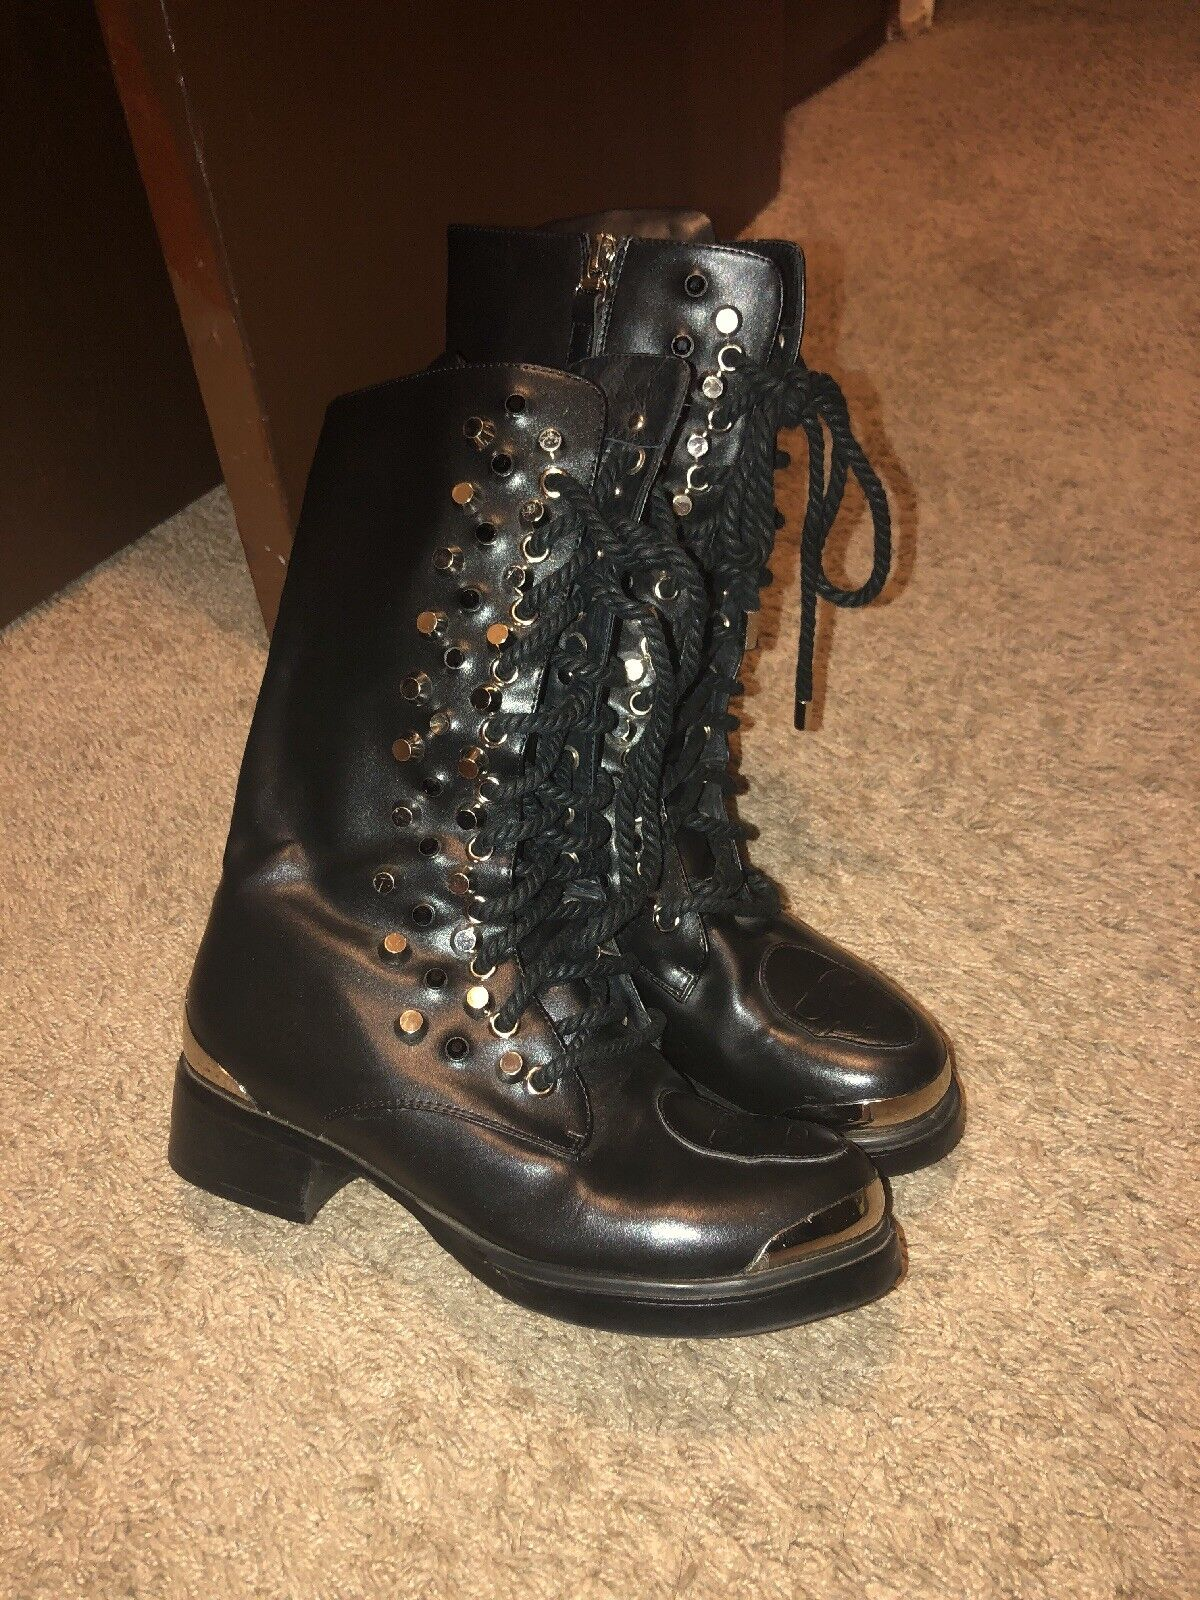 Alexander McQueen Lace Up Ankle Boots size 36 FREE SHIPPING